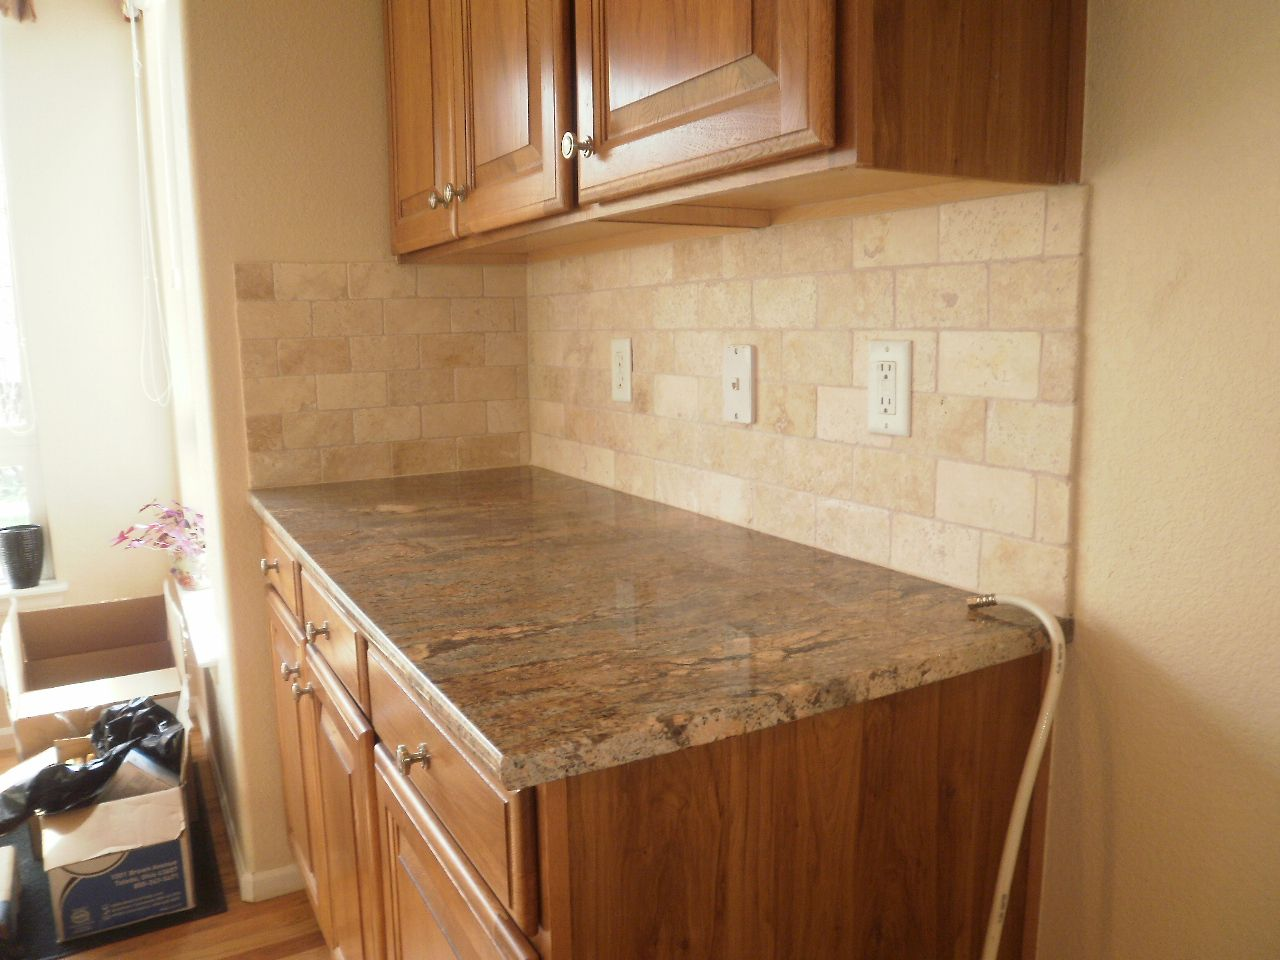 Travistene Back Splash Completed Kitchens Installations A Division Of Front Range